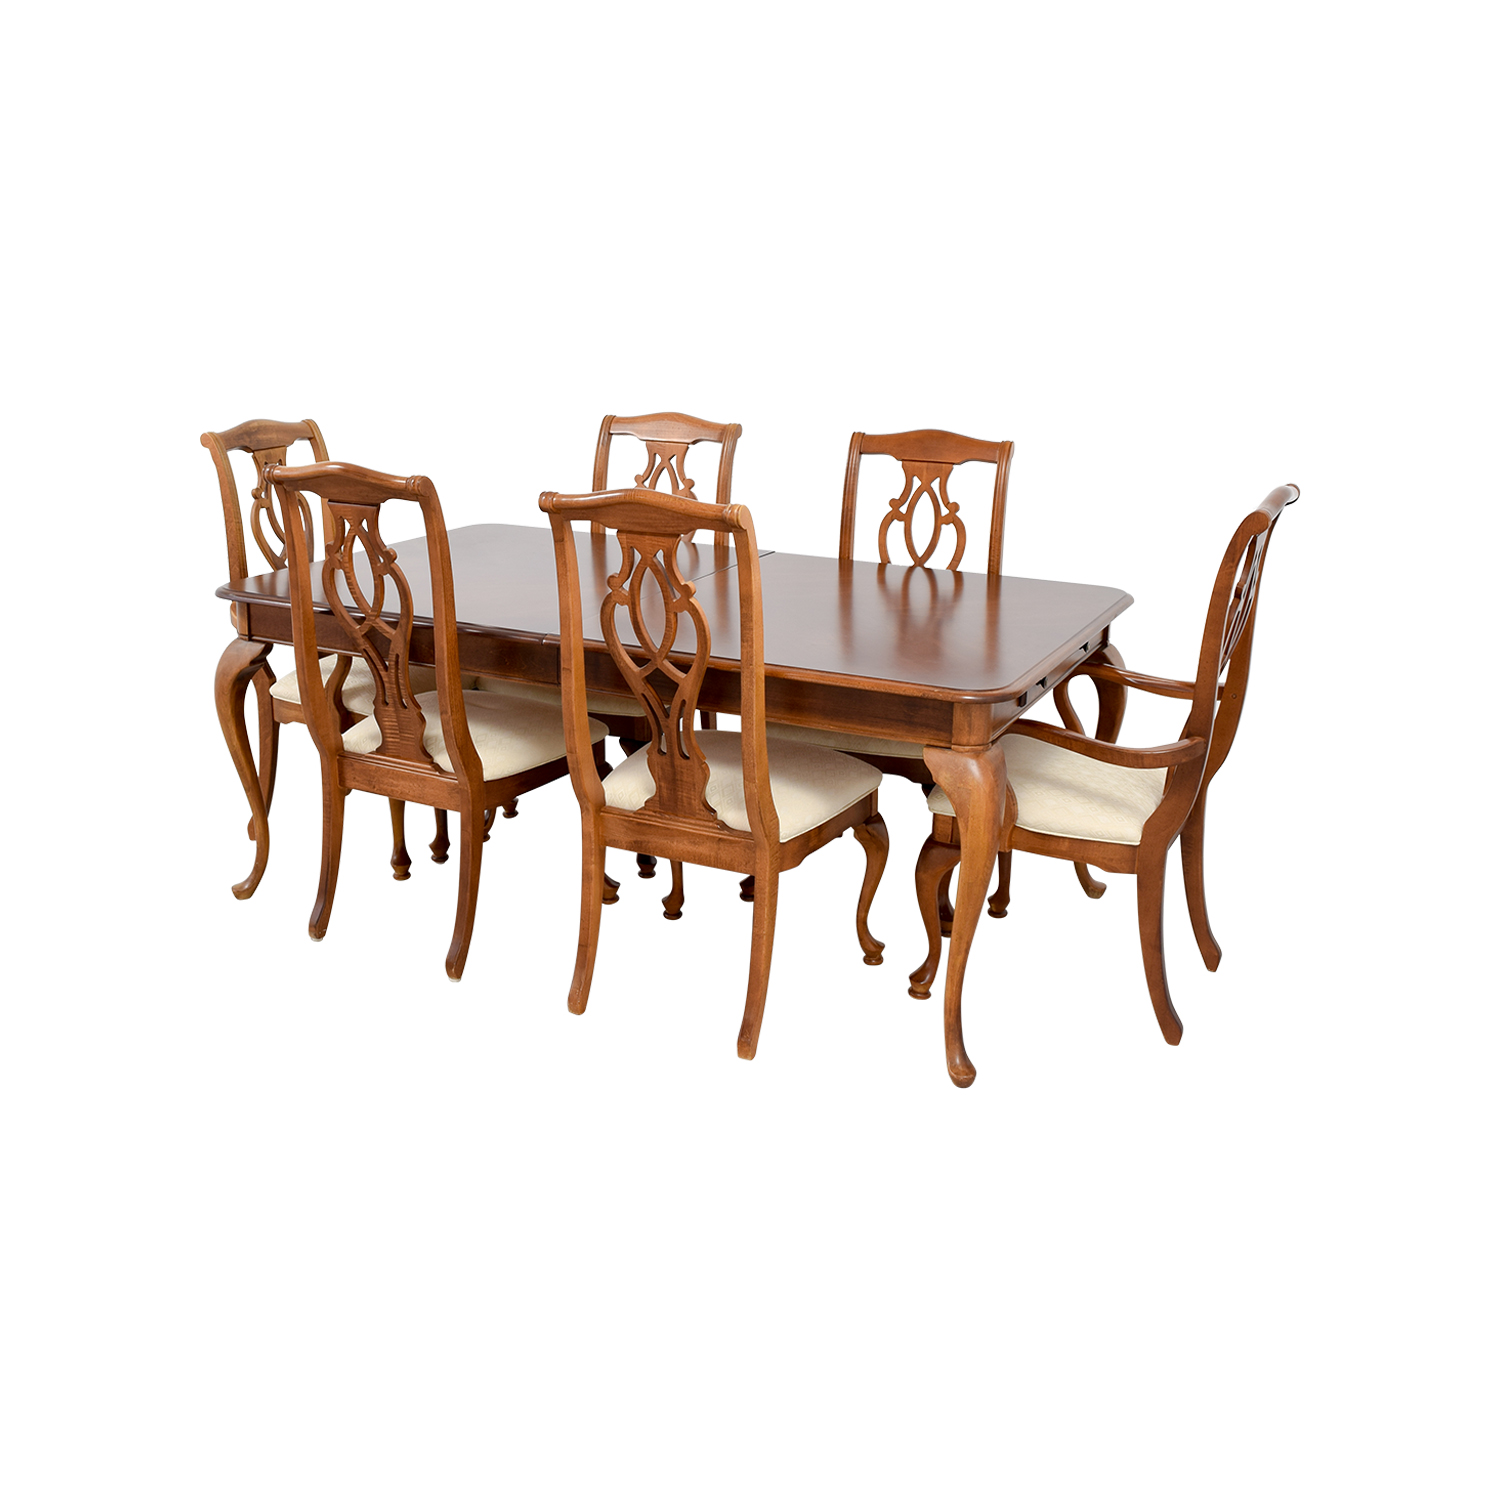 53% OFF - American Drew American Drew Dining Table Set / Tables